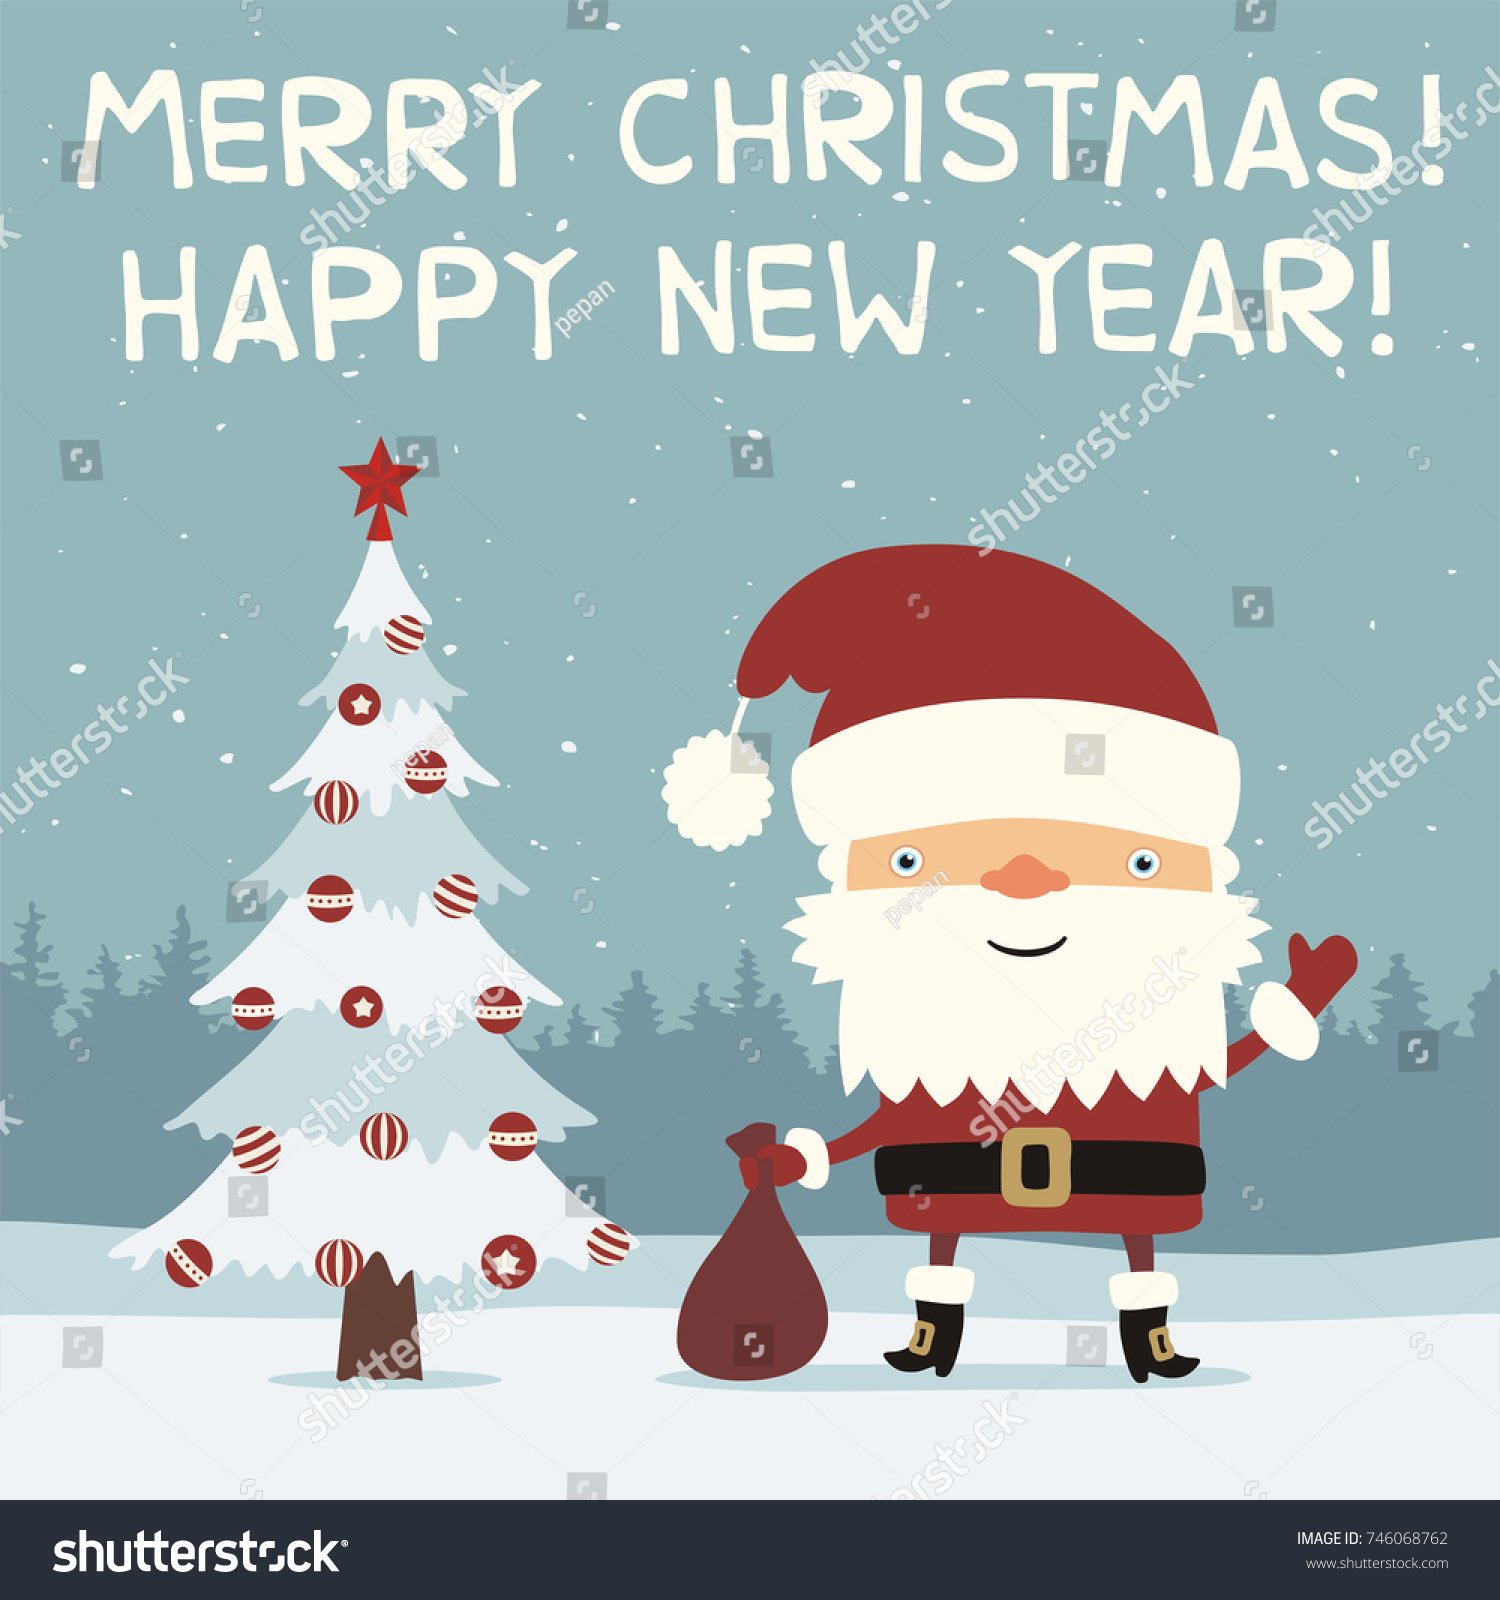 Merry Christmas Happy New Year Funny Stock Vector (Royalty Free ...